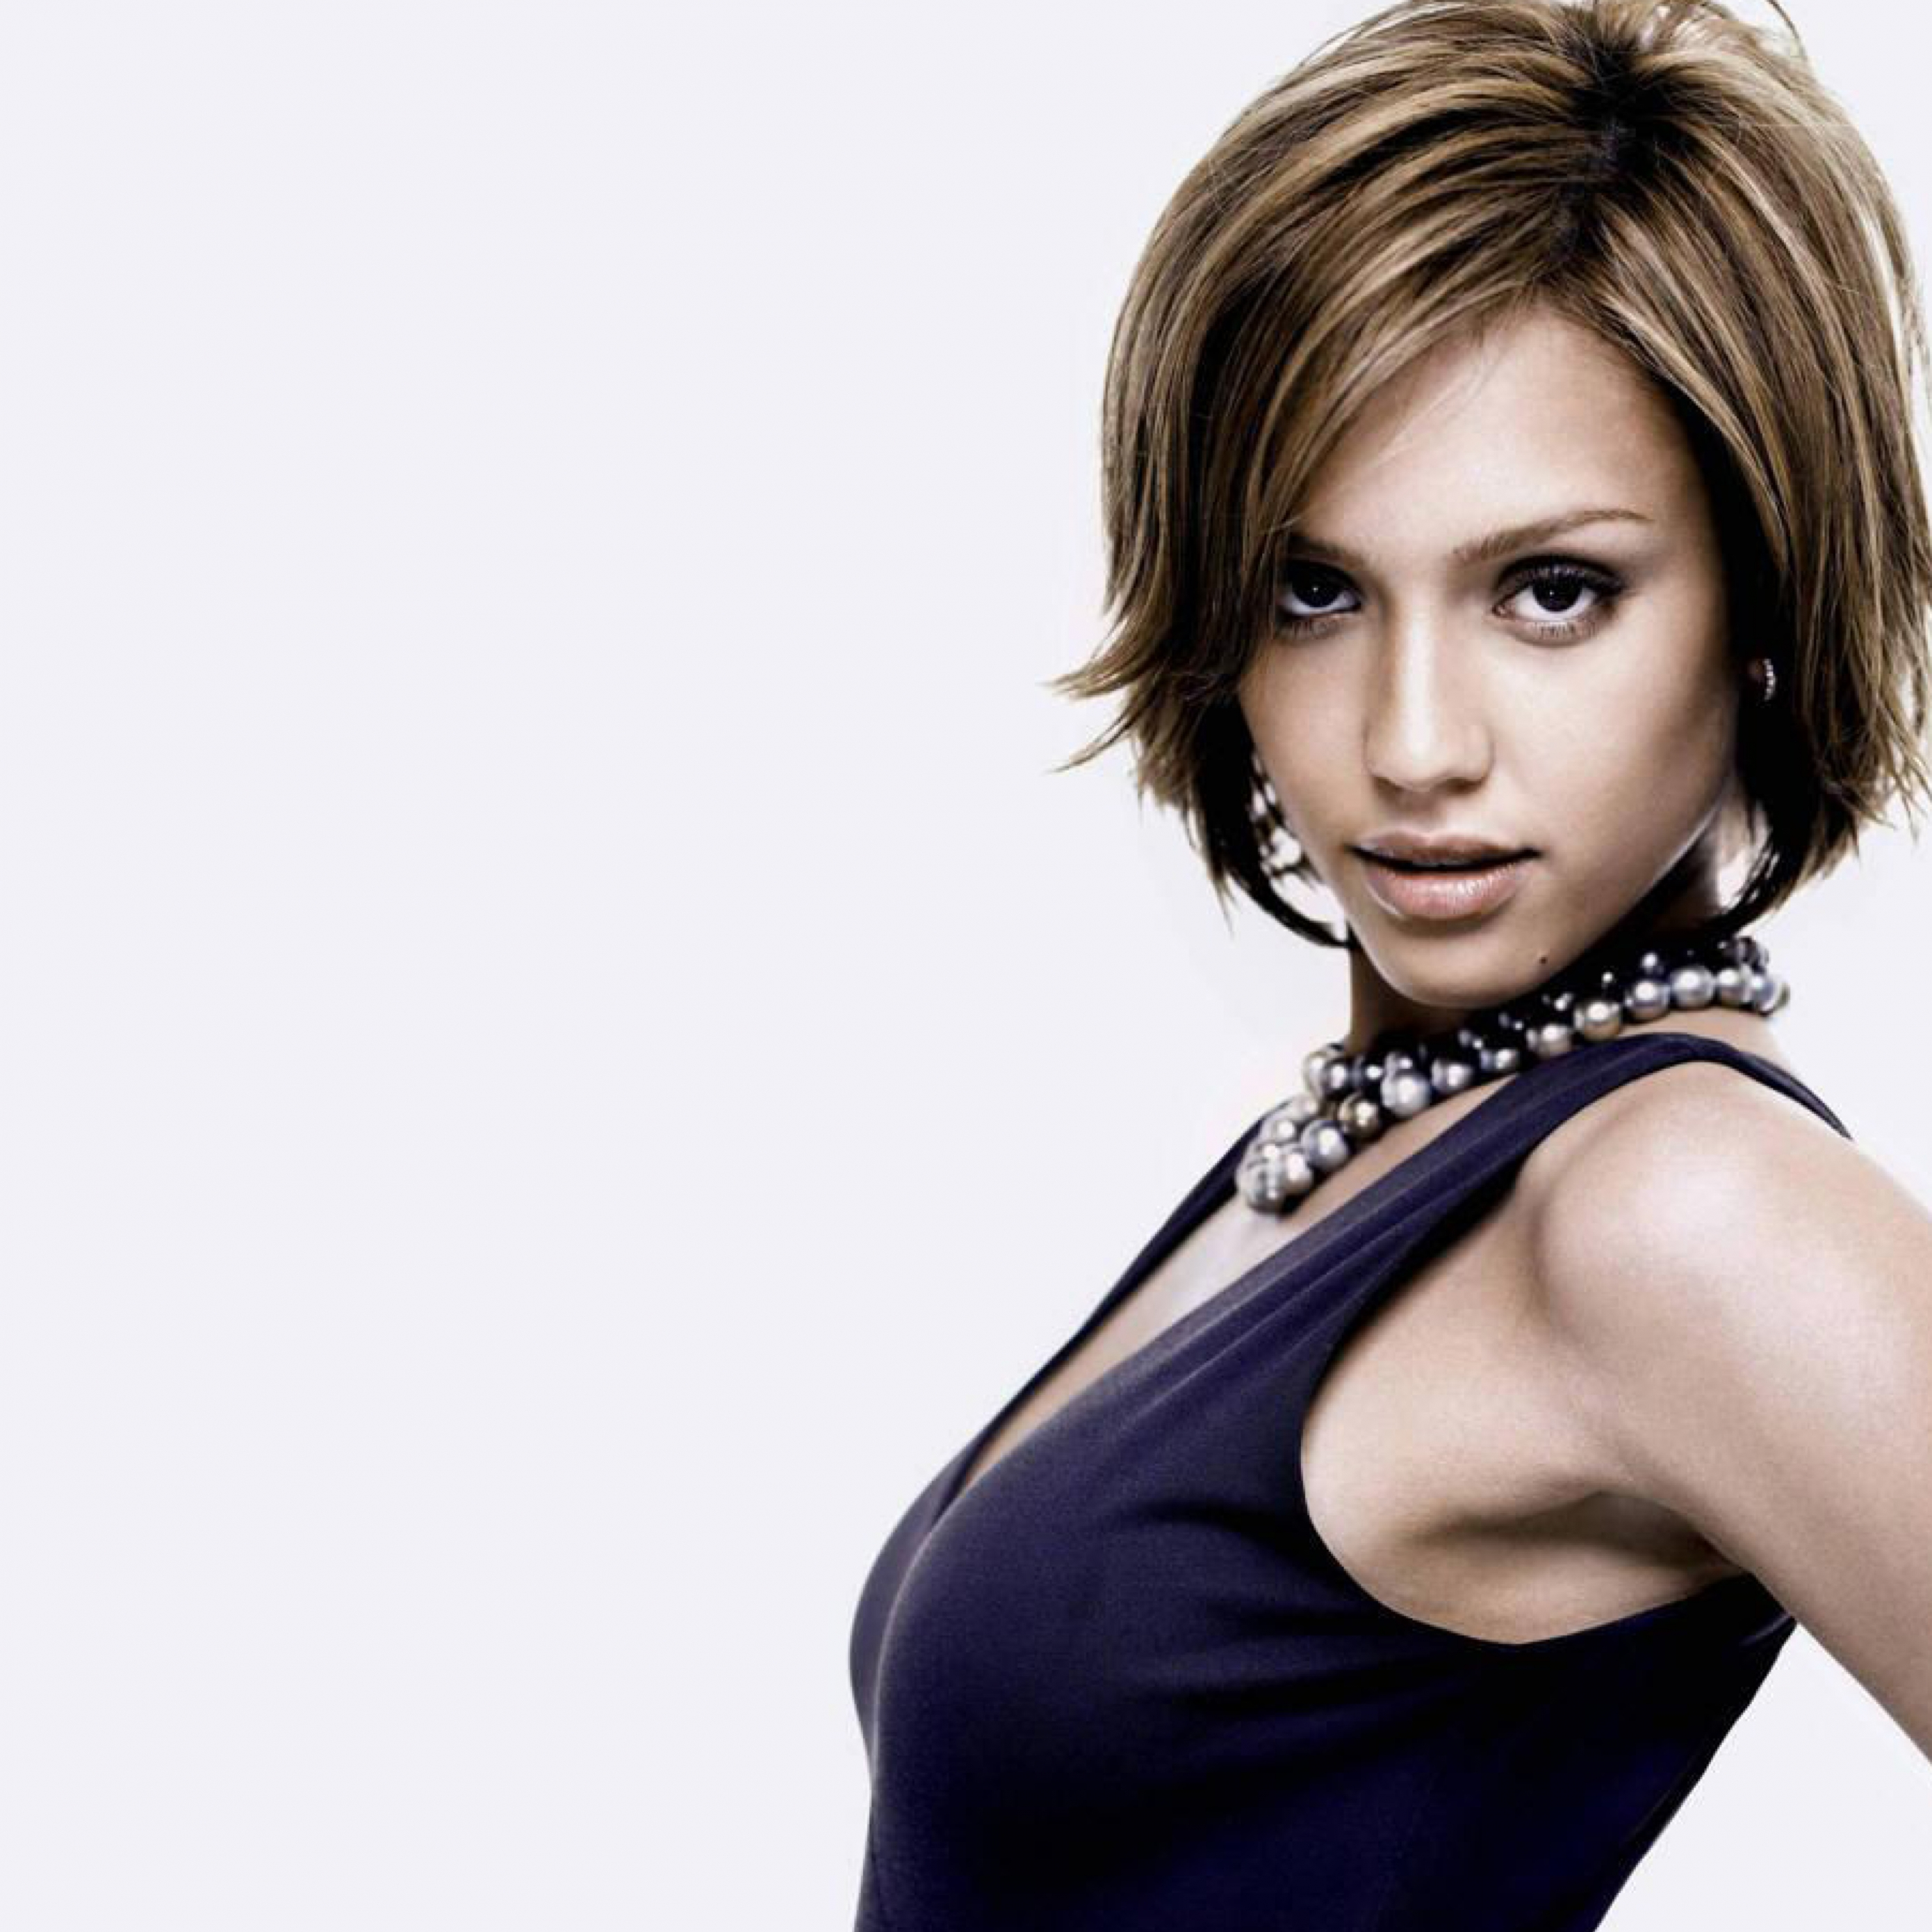 Download Jessica Alba Short Hair Style Wallpapers Apple iPad Air 2780x2780